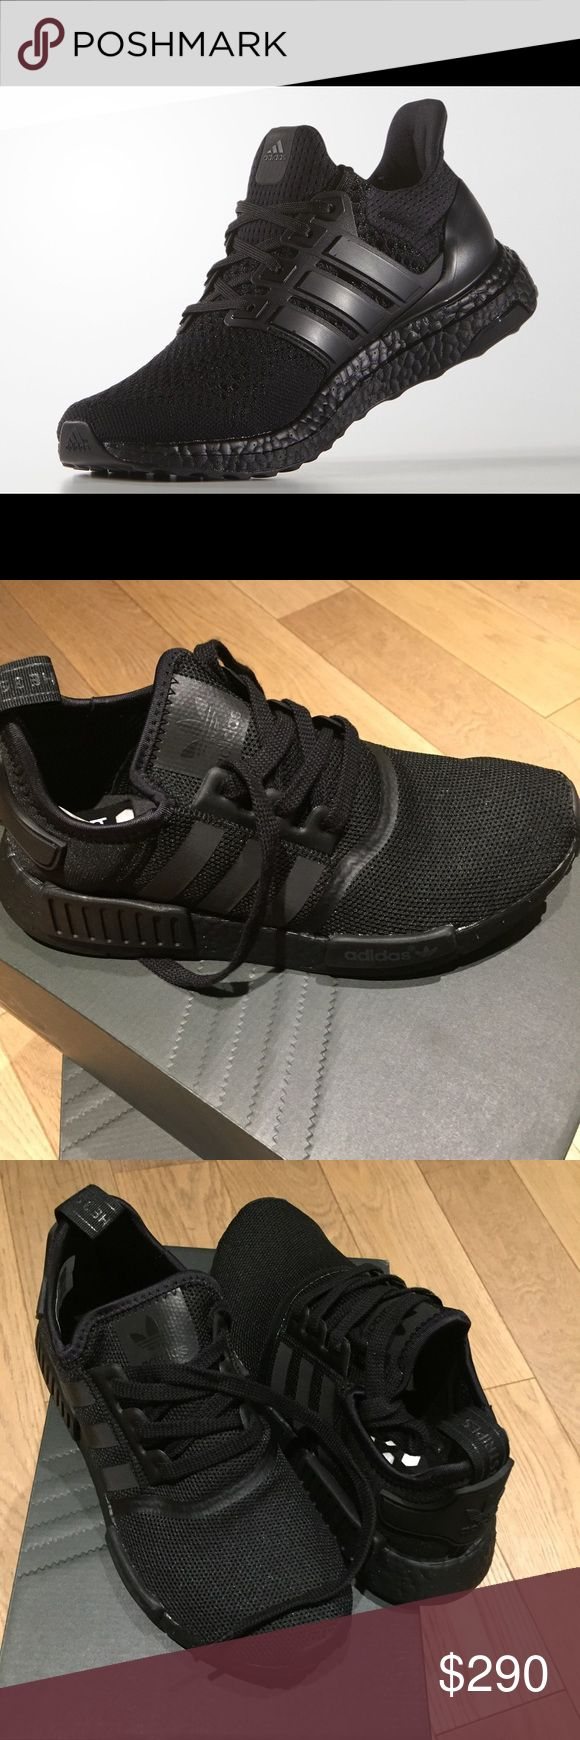 Adidas NMD R1 triple black boost shoes Men's size 6 shoe, which works best  for